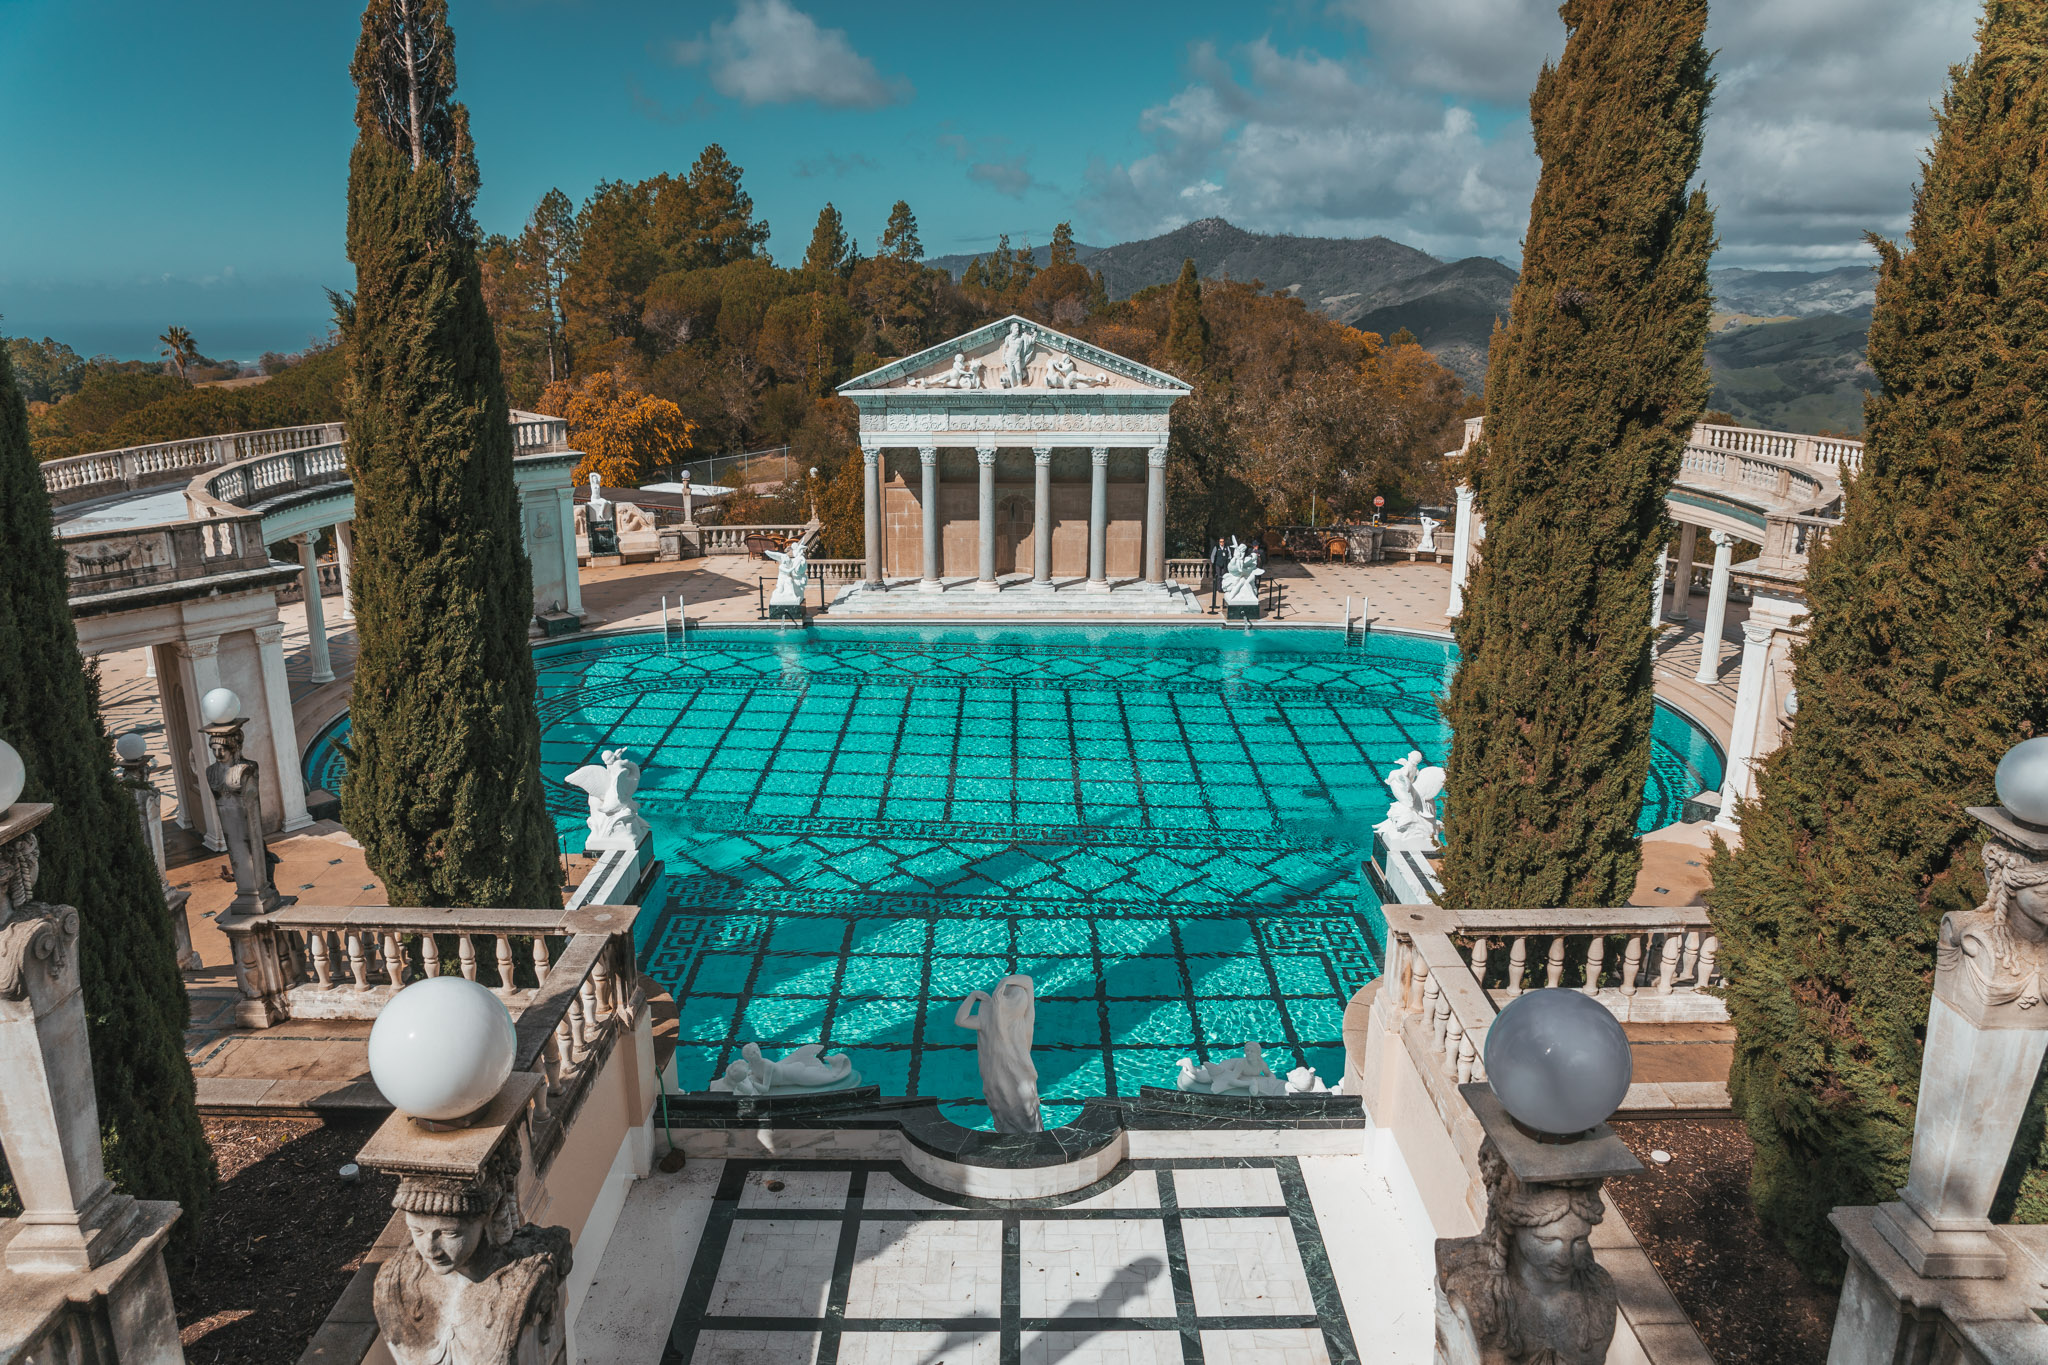 Hearst Castle outdoor pool ~ The Most Instagrammable Spots in SLO CAL County ~ #readysetjetset #slocal #california #blogpost #travel #sanluisobispo